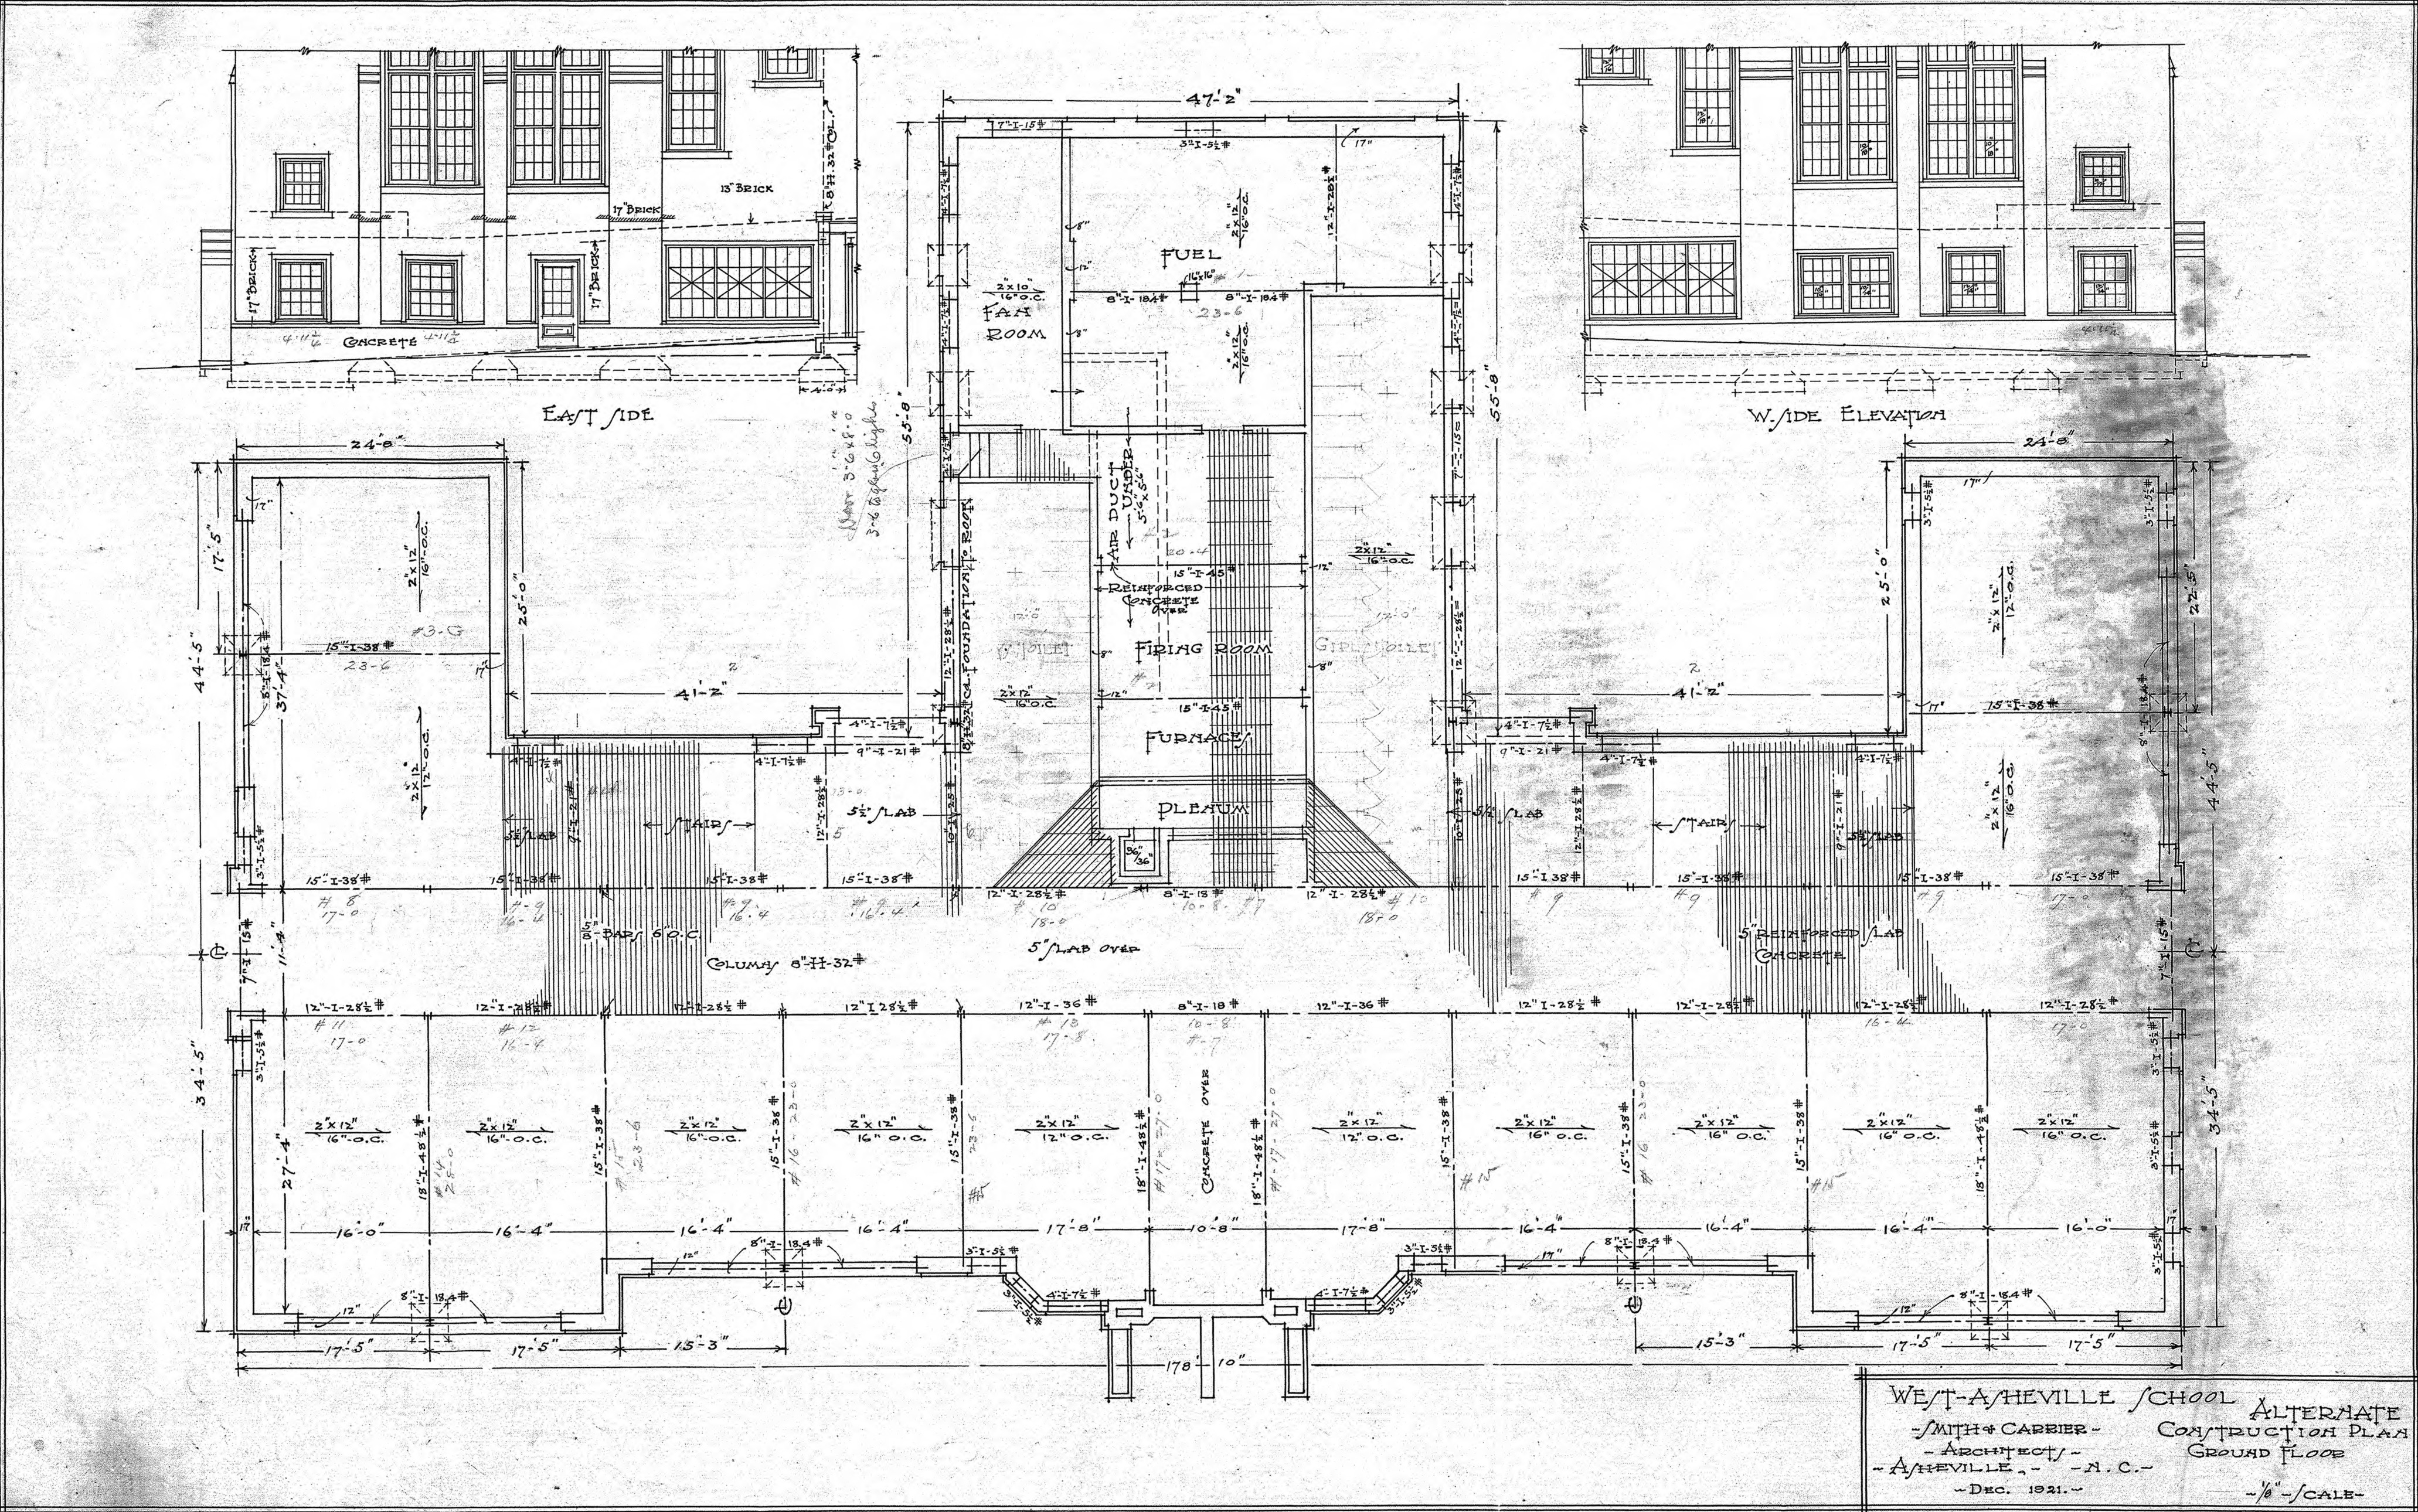 Famous house interior designers building plans for Famous building blueprints